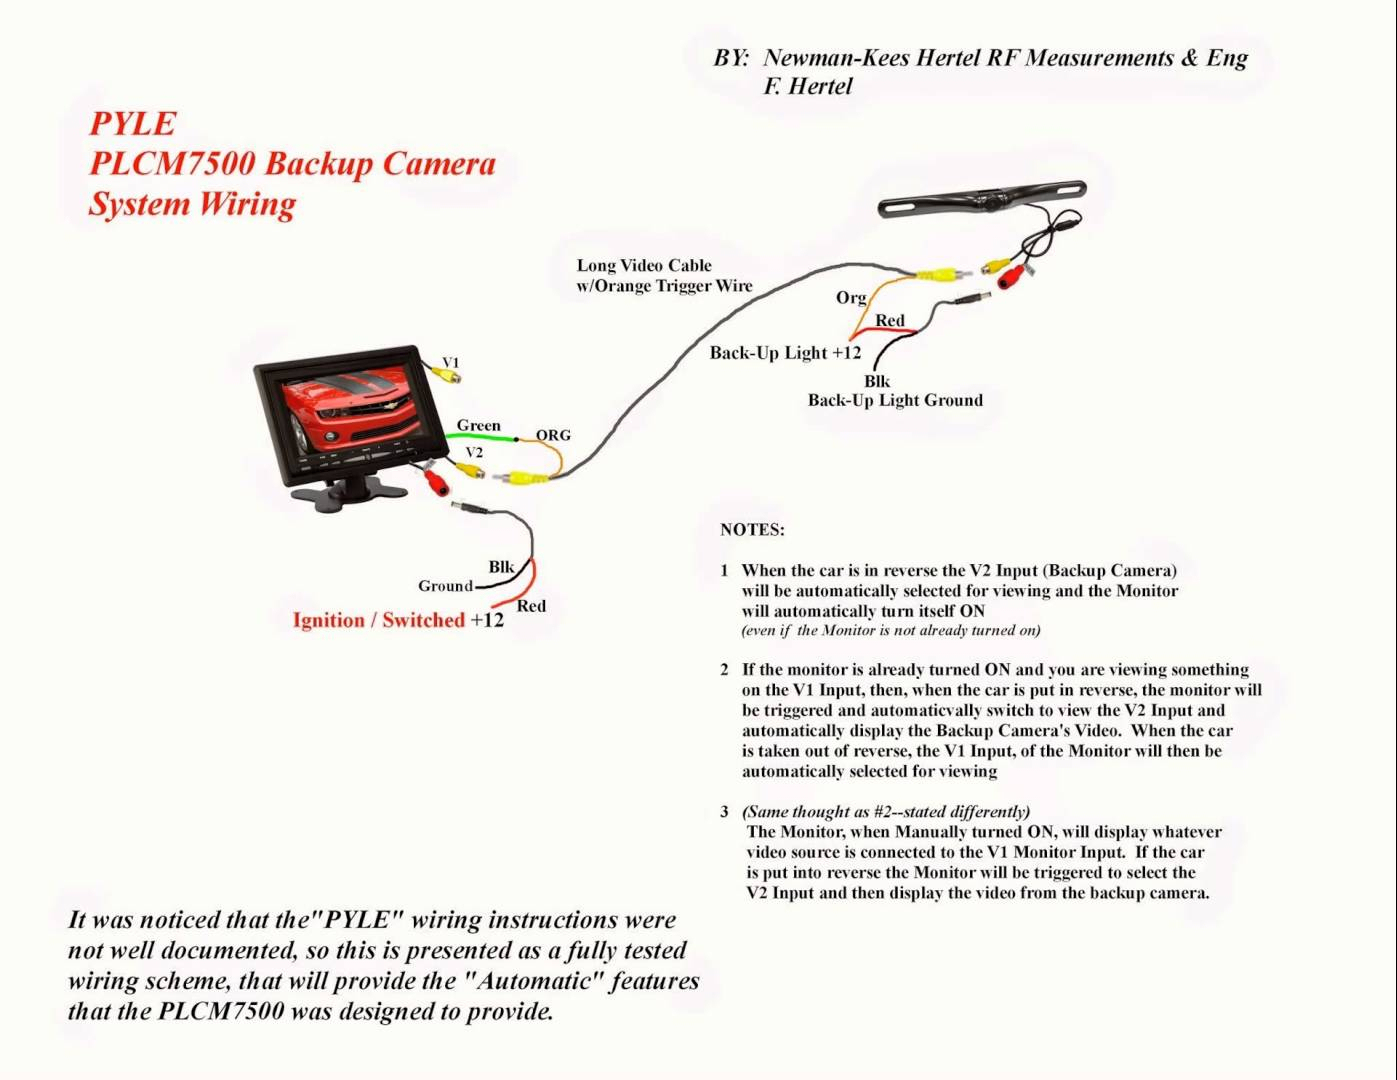 Toyota Tundra Backup Camera Wiring Diagram | Wiring Library - Toyota Tundra Backup Camera Wiring Diagram